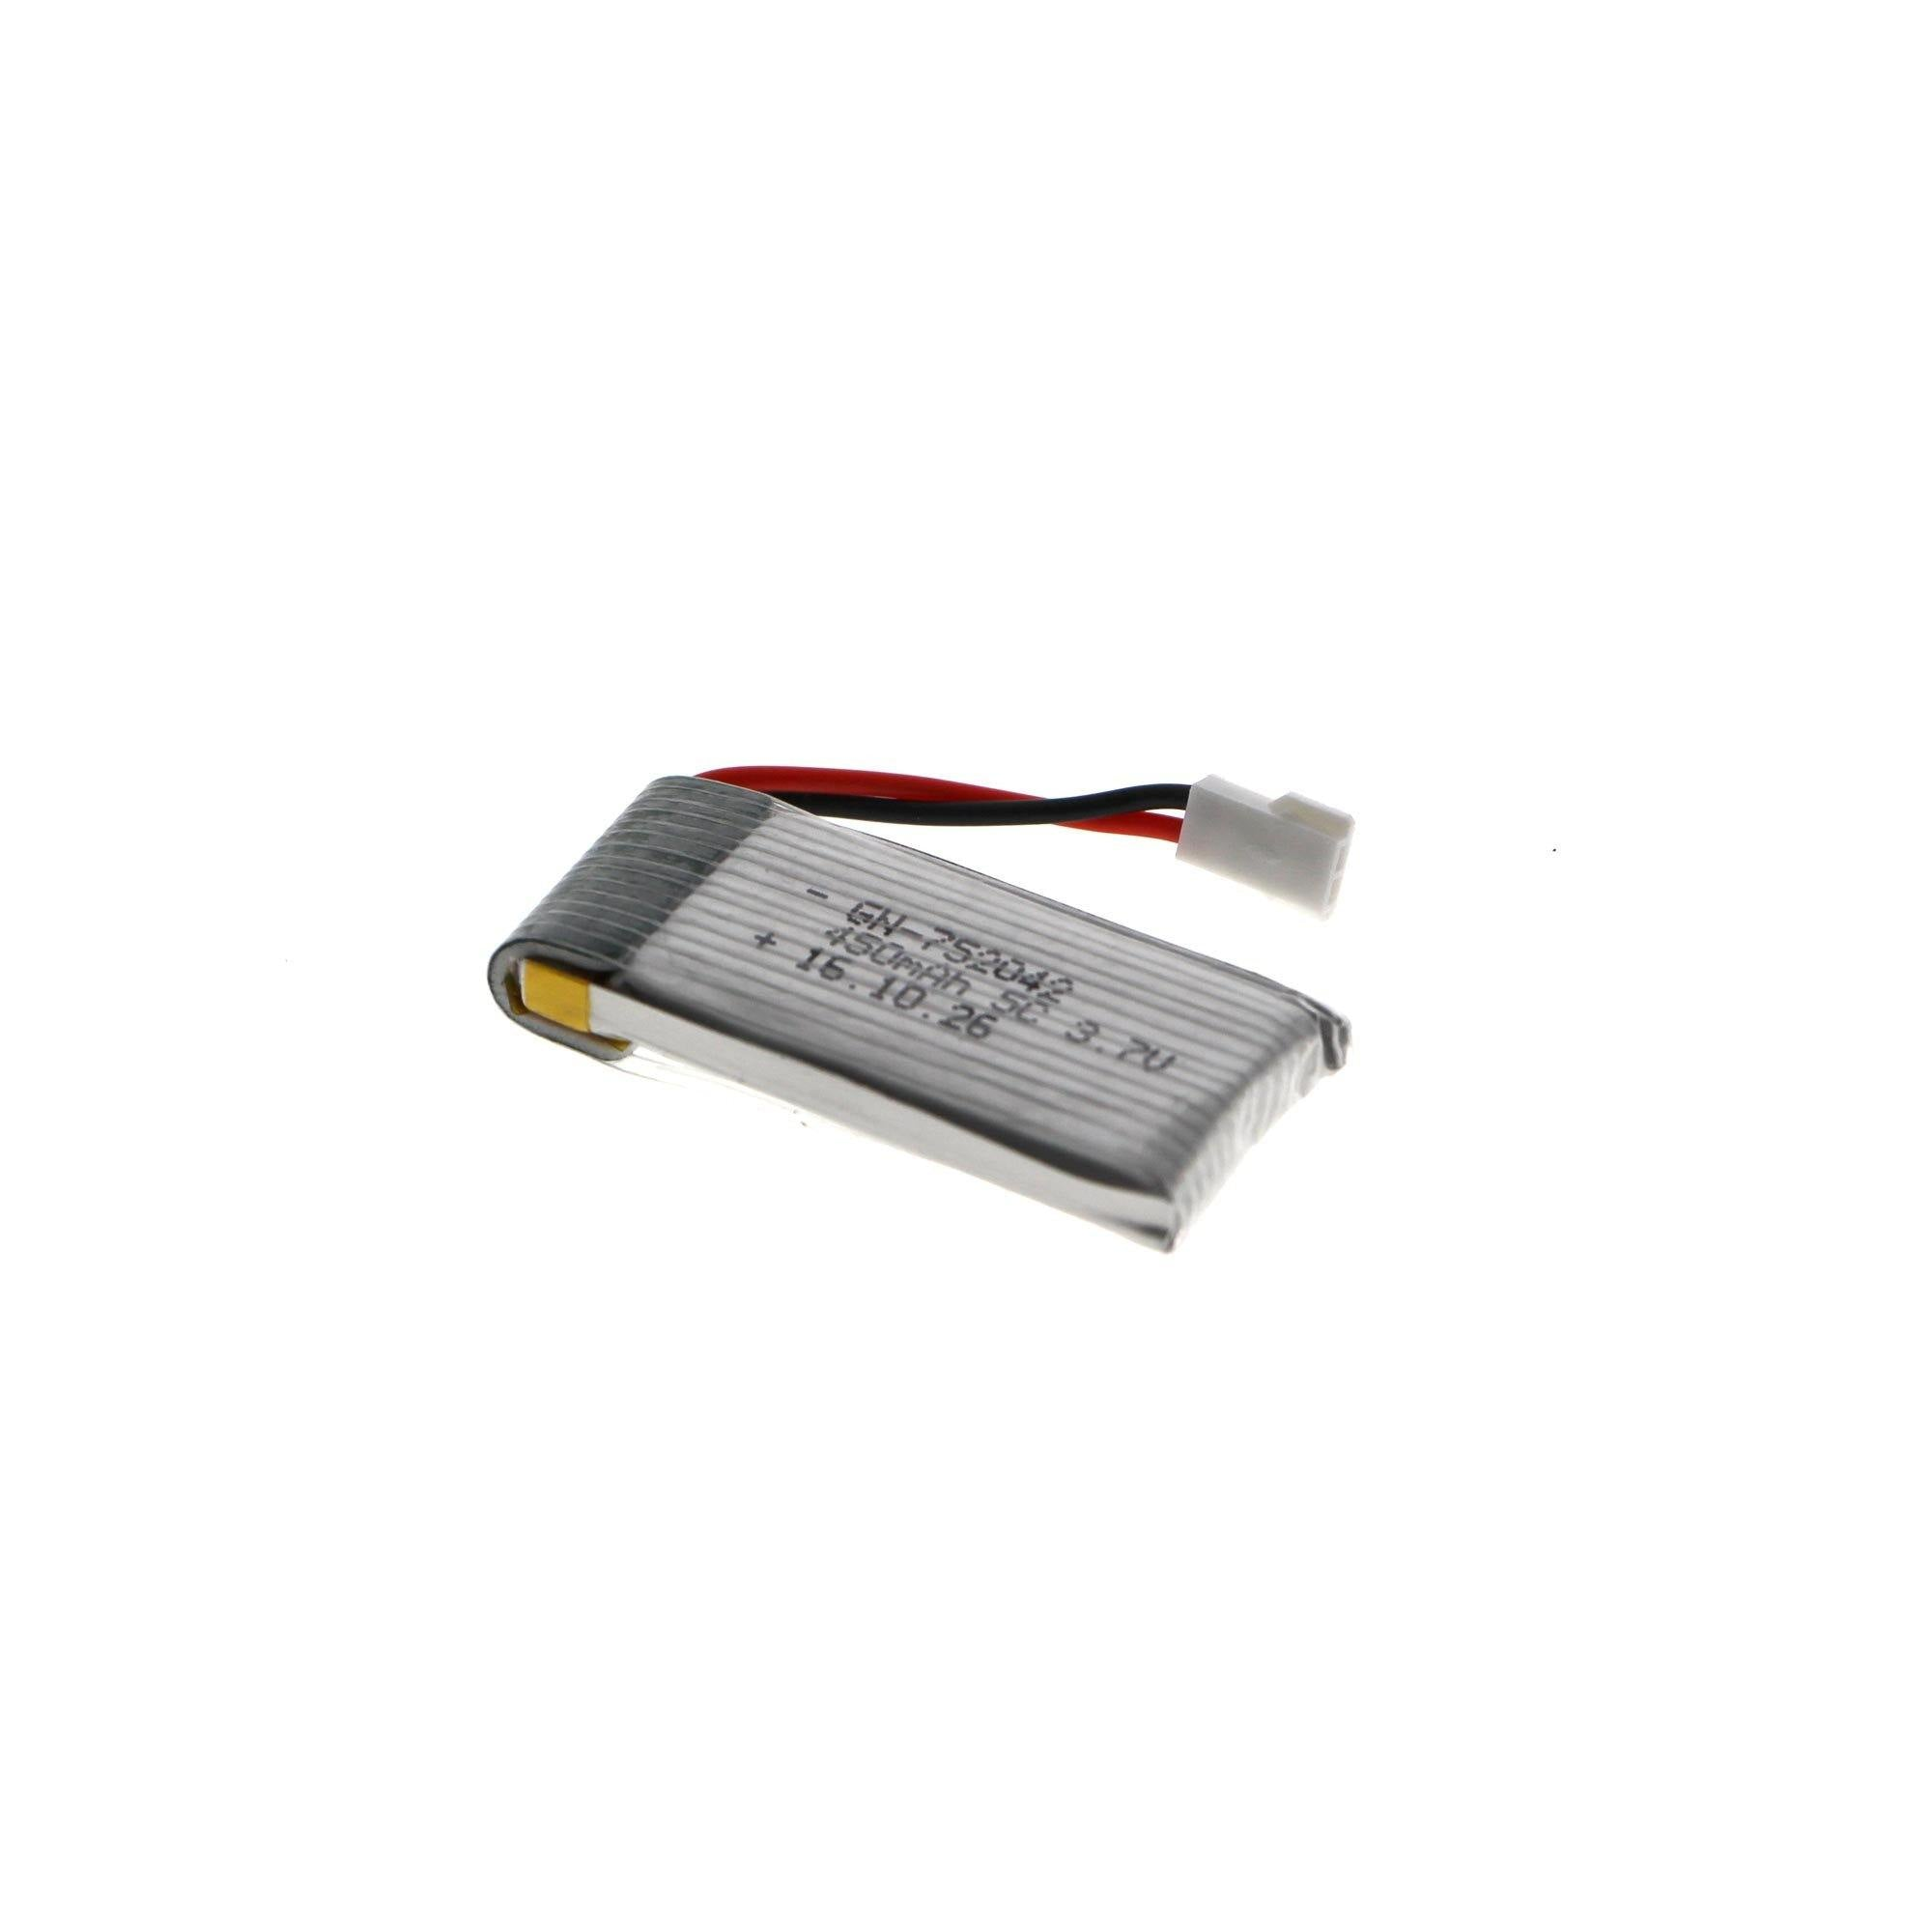 Focus FPV Drone Spare 3.7 450 mAh Transmitter Battery